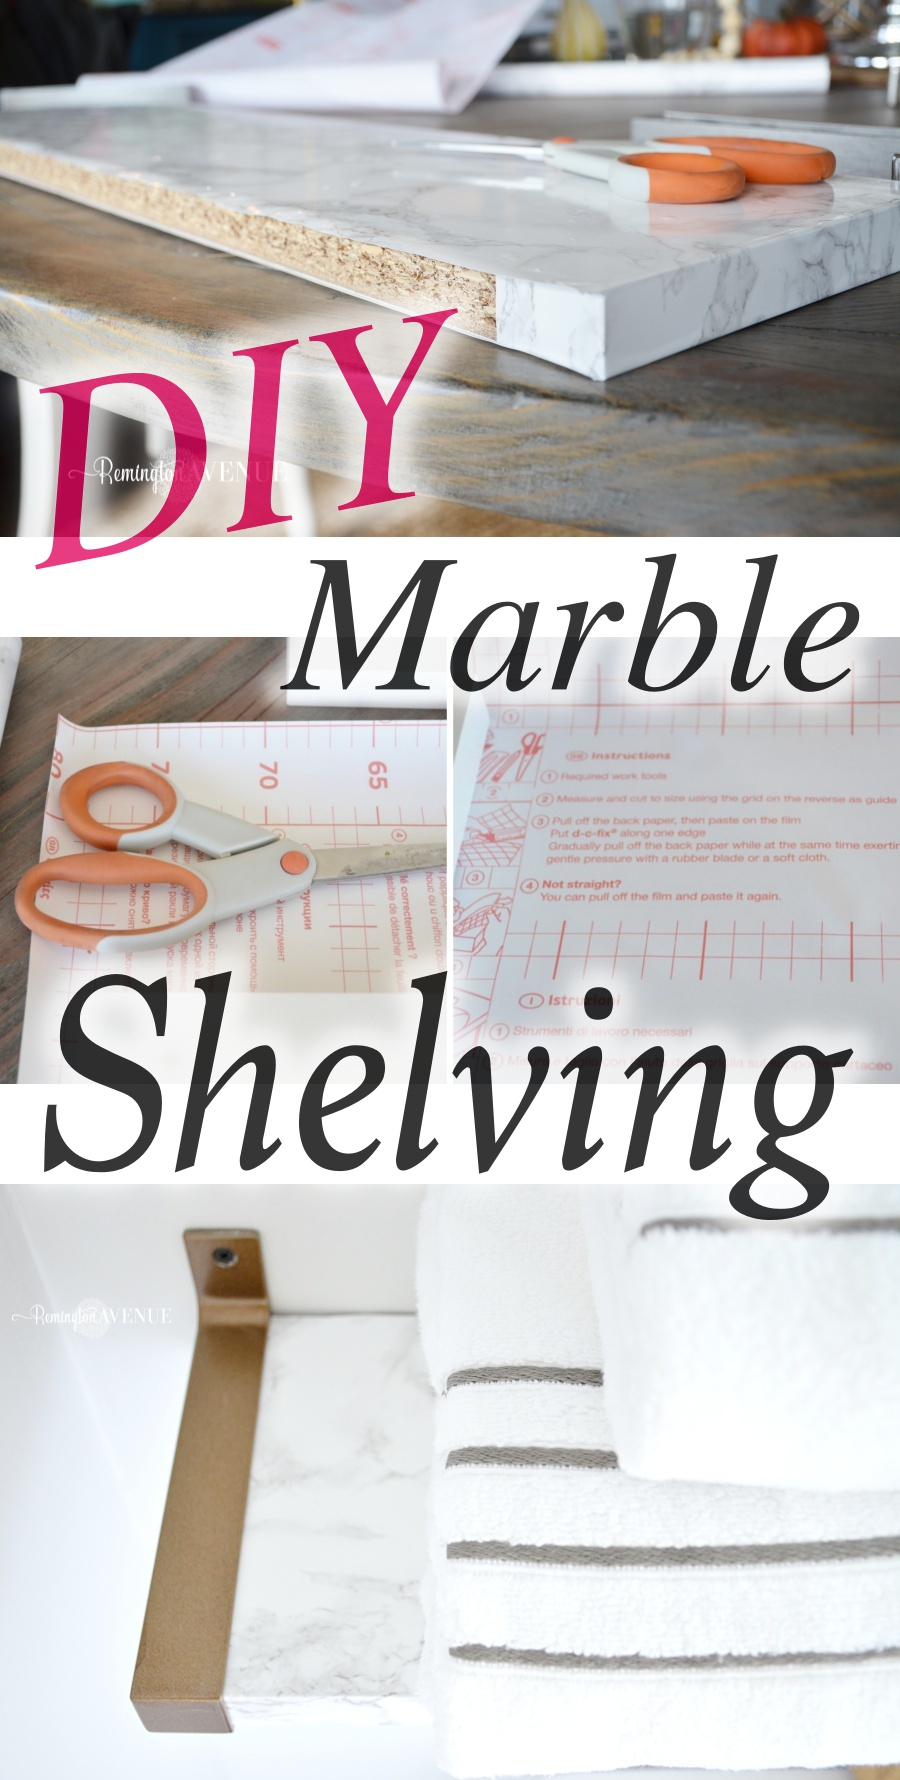 diy-marble-shelving-cover